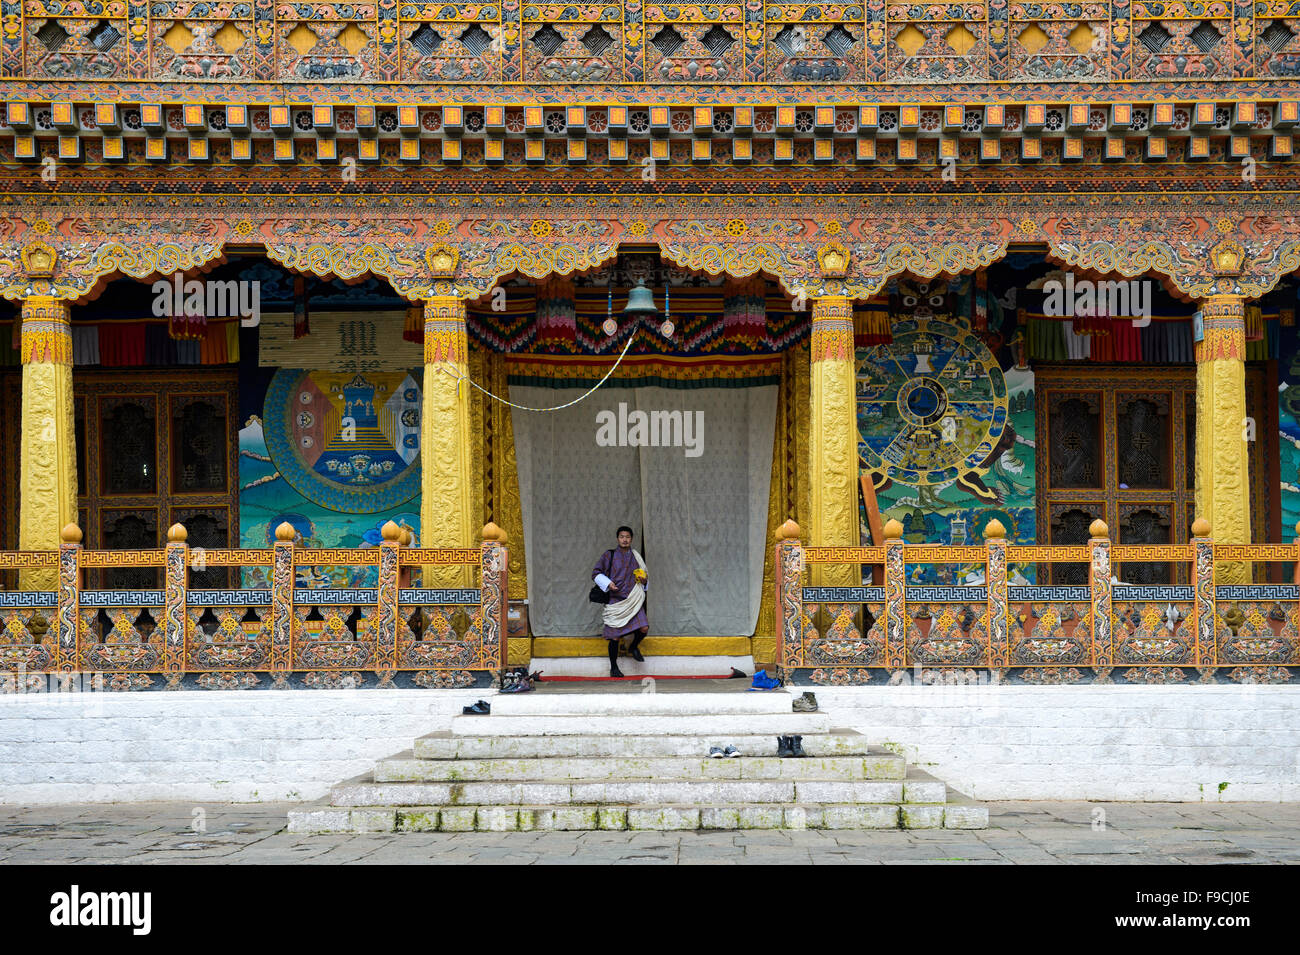 Local man at the entrance to the coronation temple at the monastery and fortress Punakha Dzong, Punakah, Bhutan - Stock Image